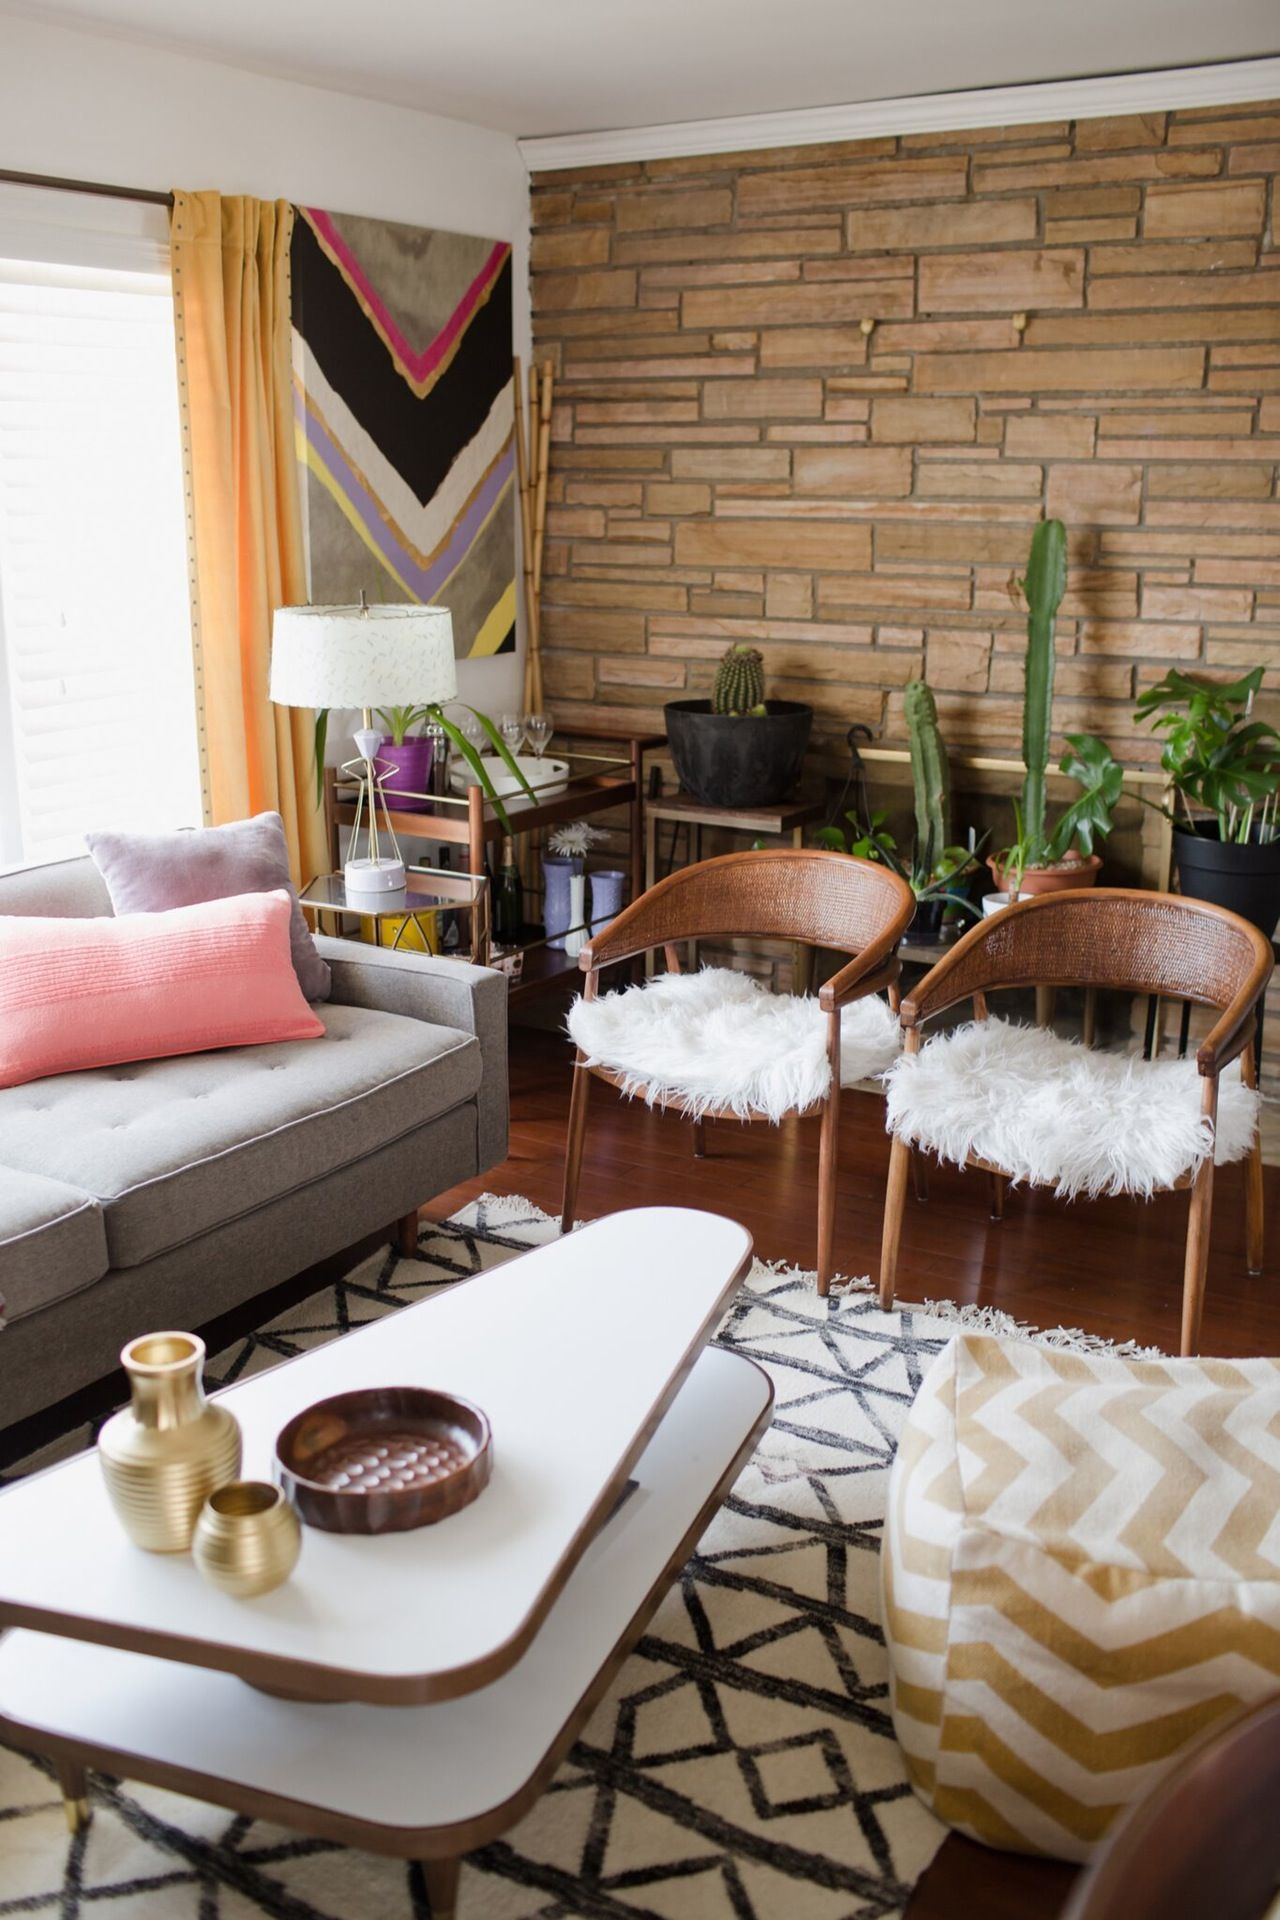 Vintage Living Room Ideas For Small Spaces: A Contemporary Chic, Country Glam Home